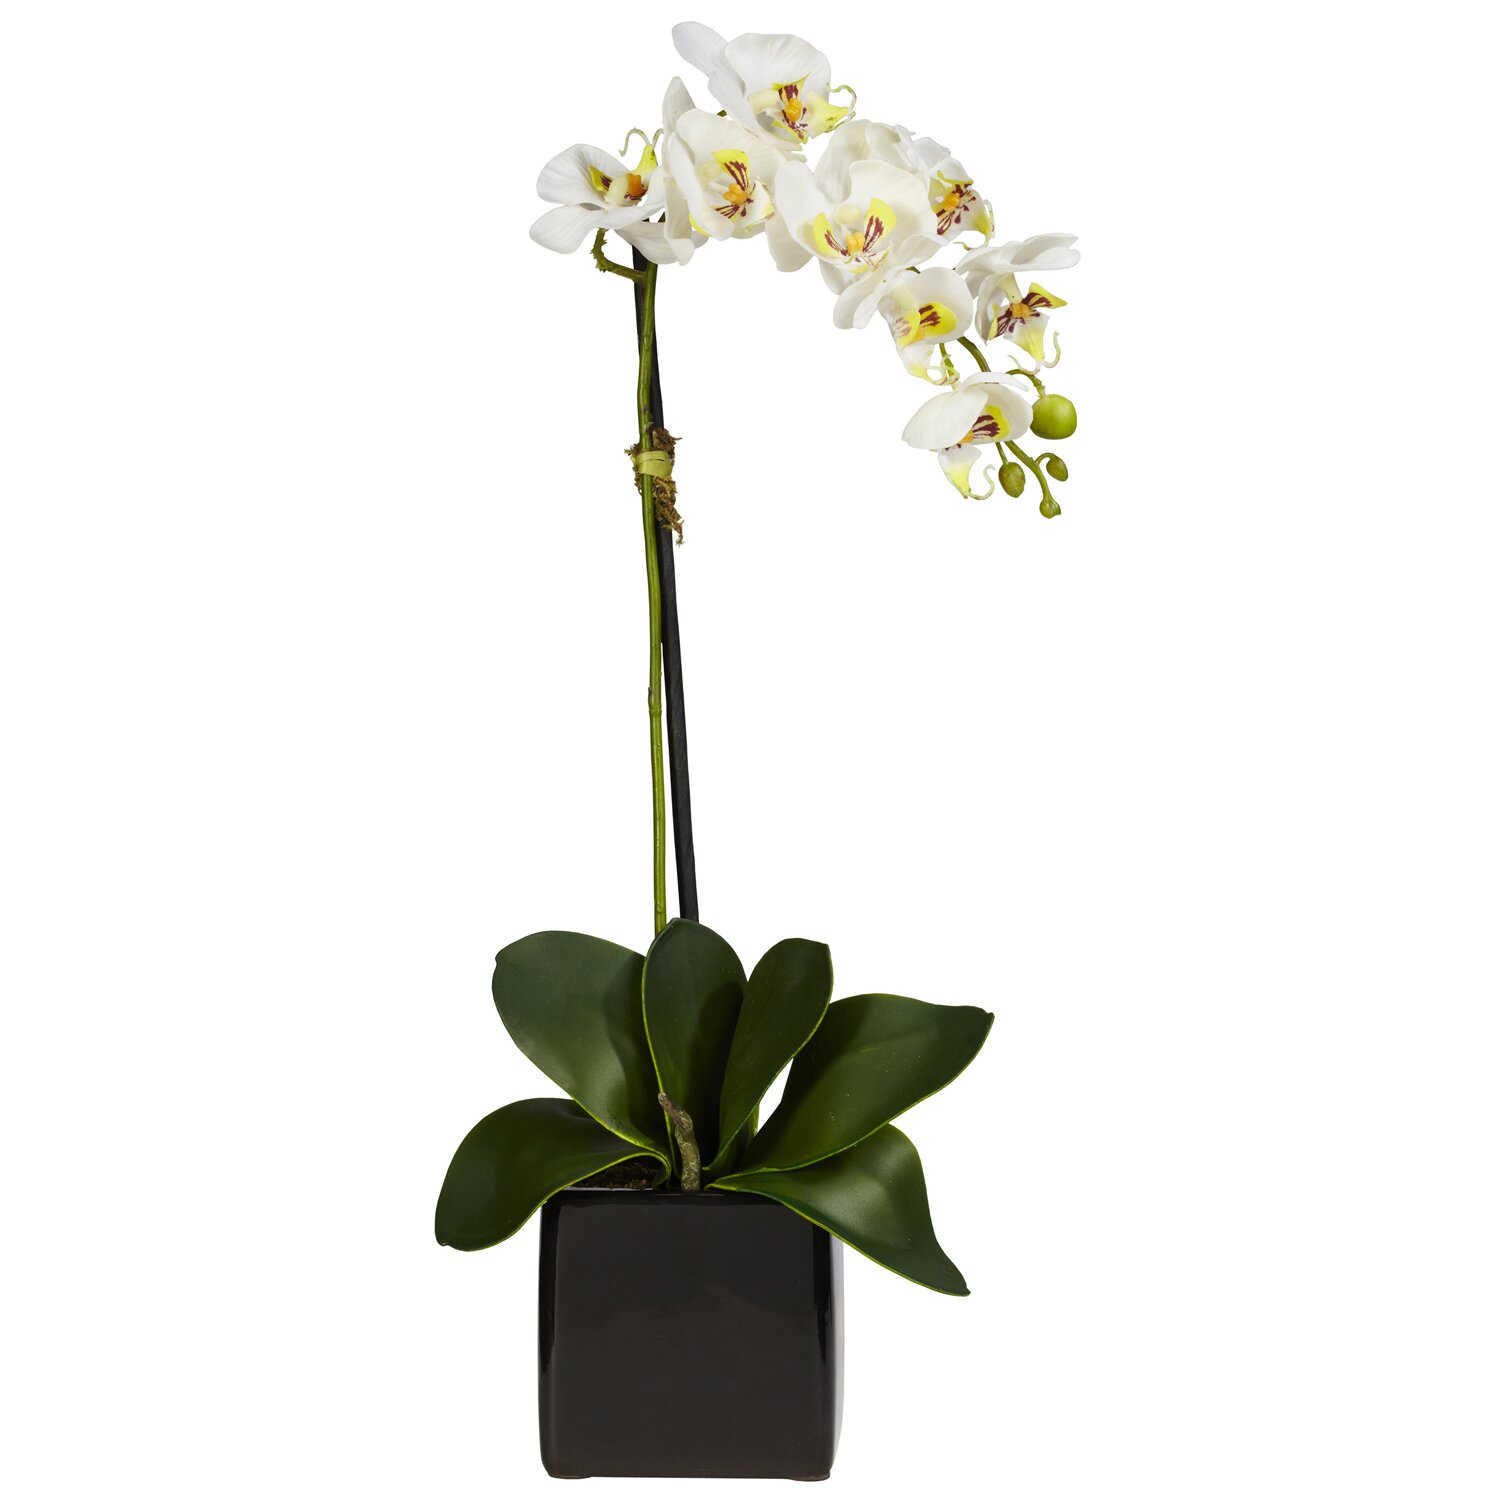 Patio wall decorations - Phalaenopsis Orchid With Black Vase Silk Flowers By Nearly Natural